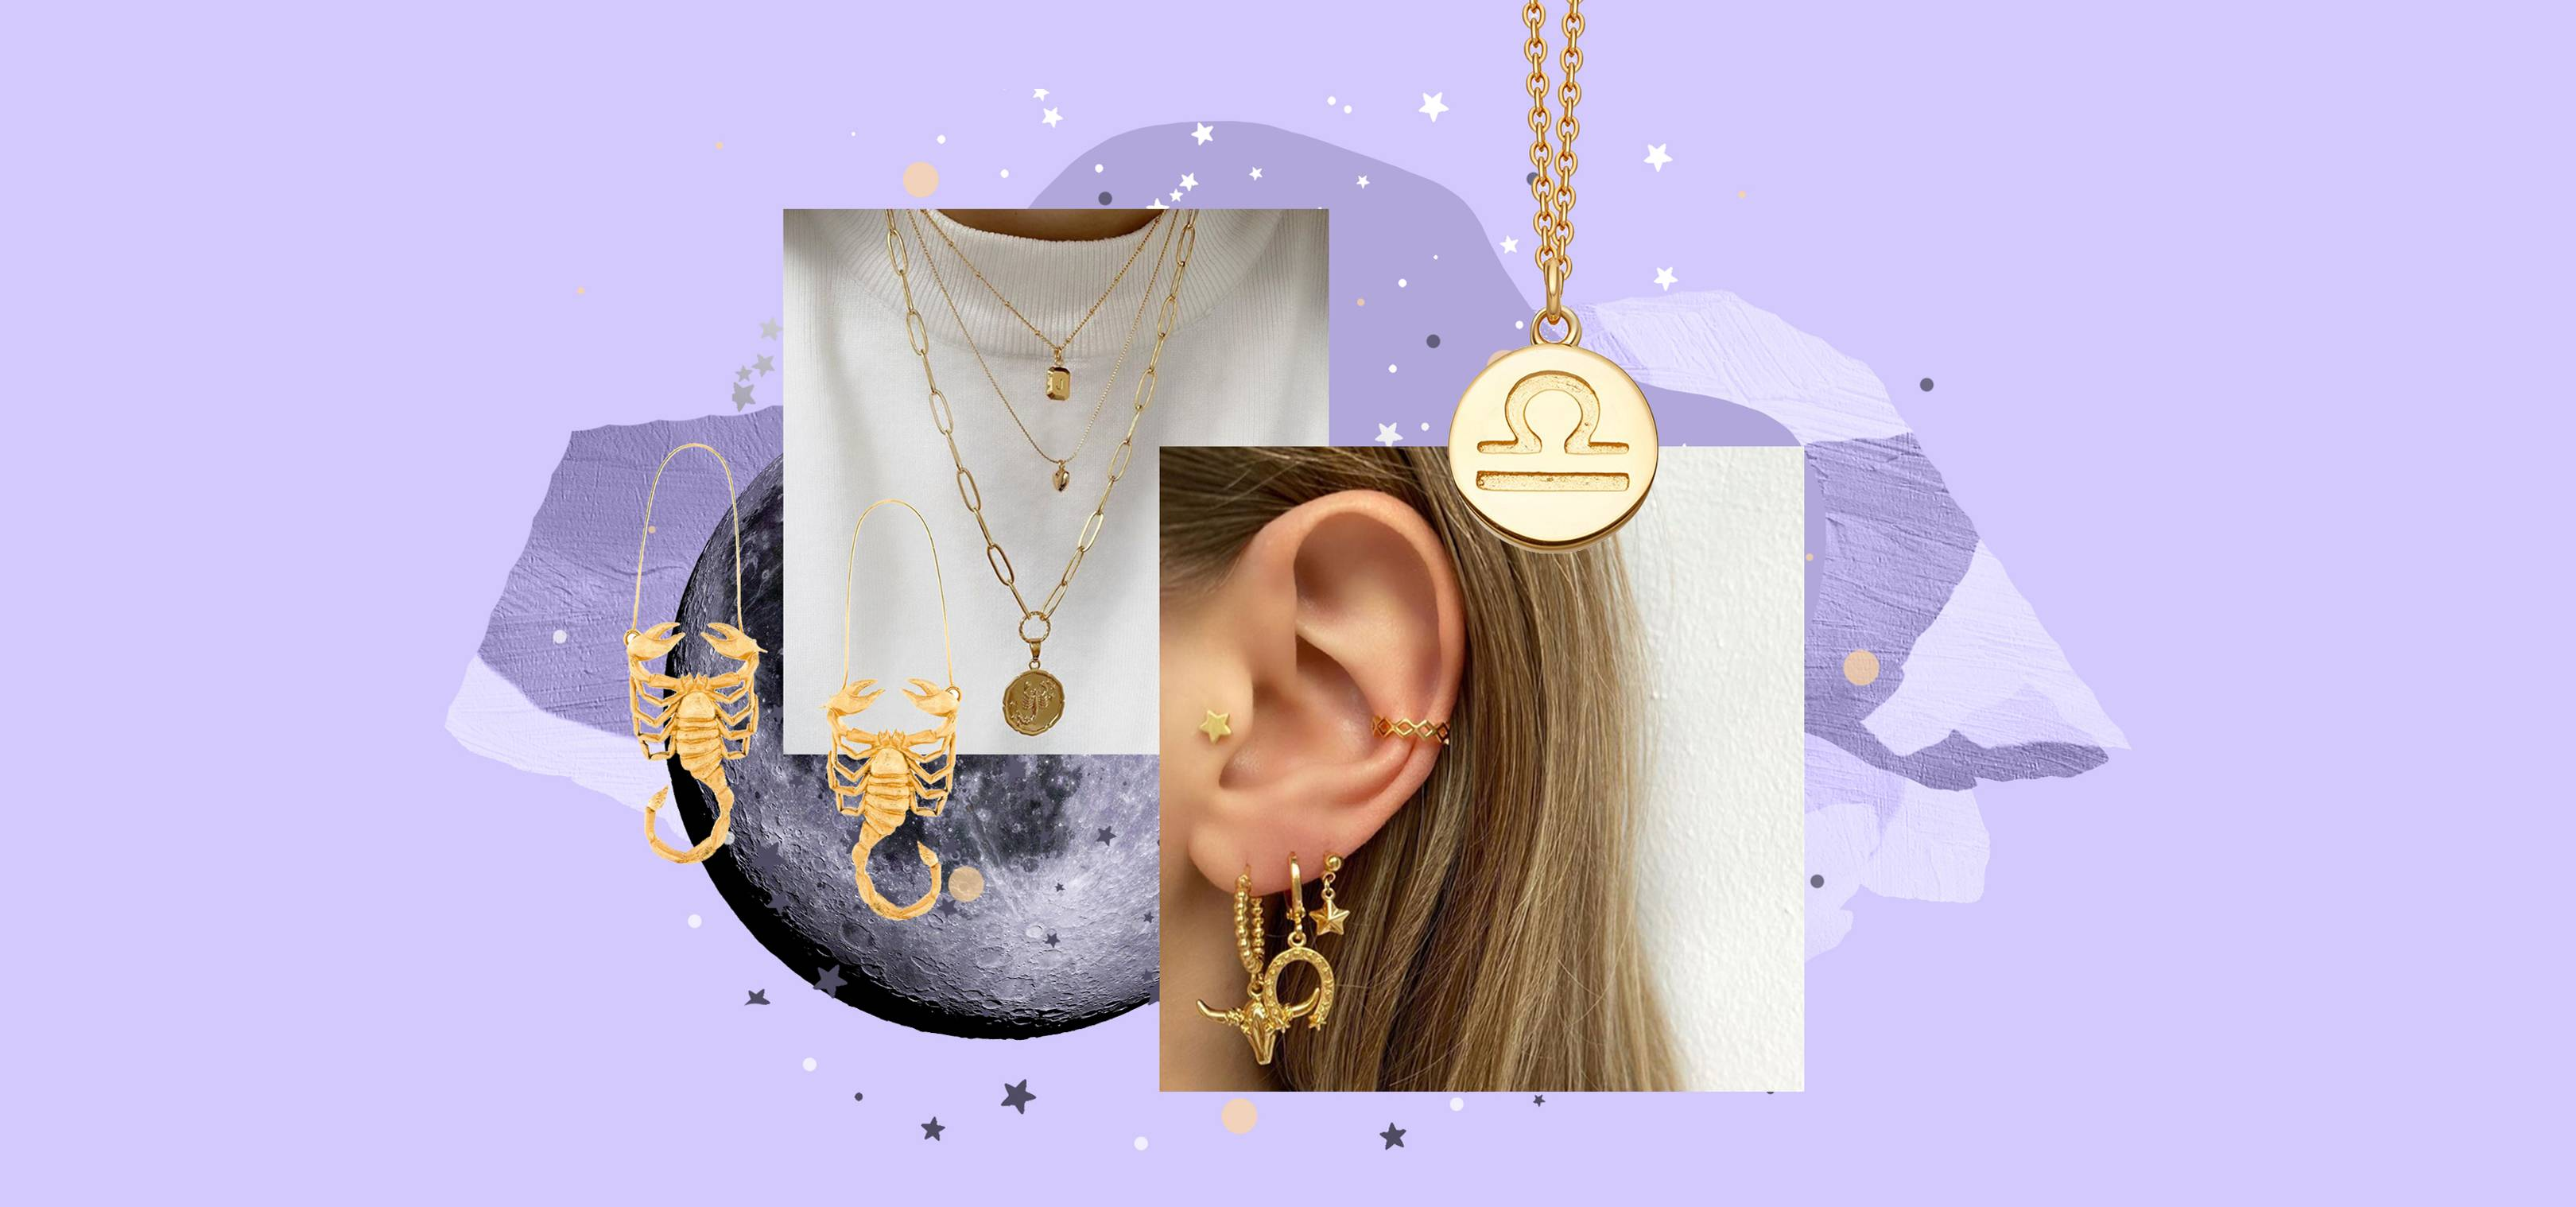 This is the jewellery you should wear according to your star sign